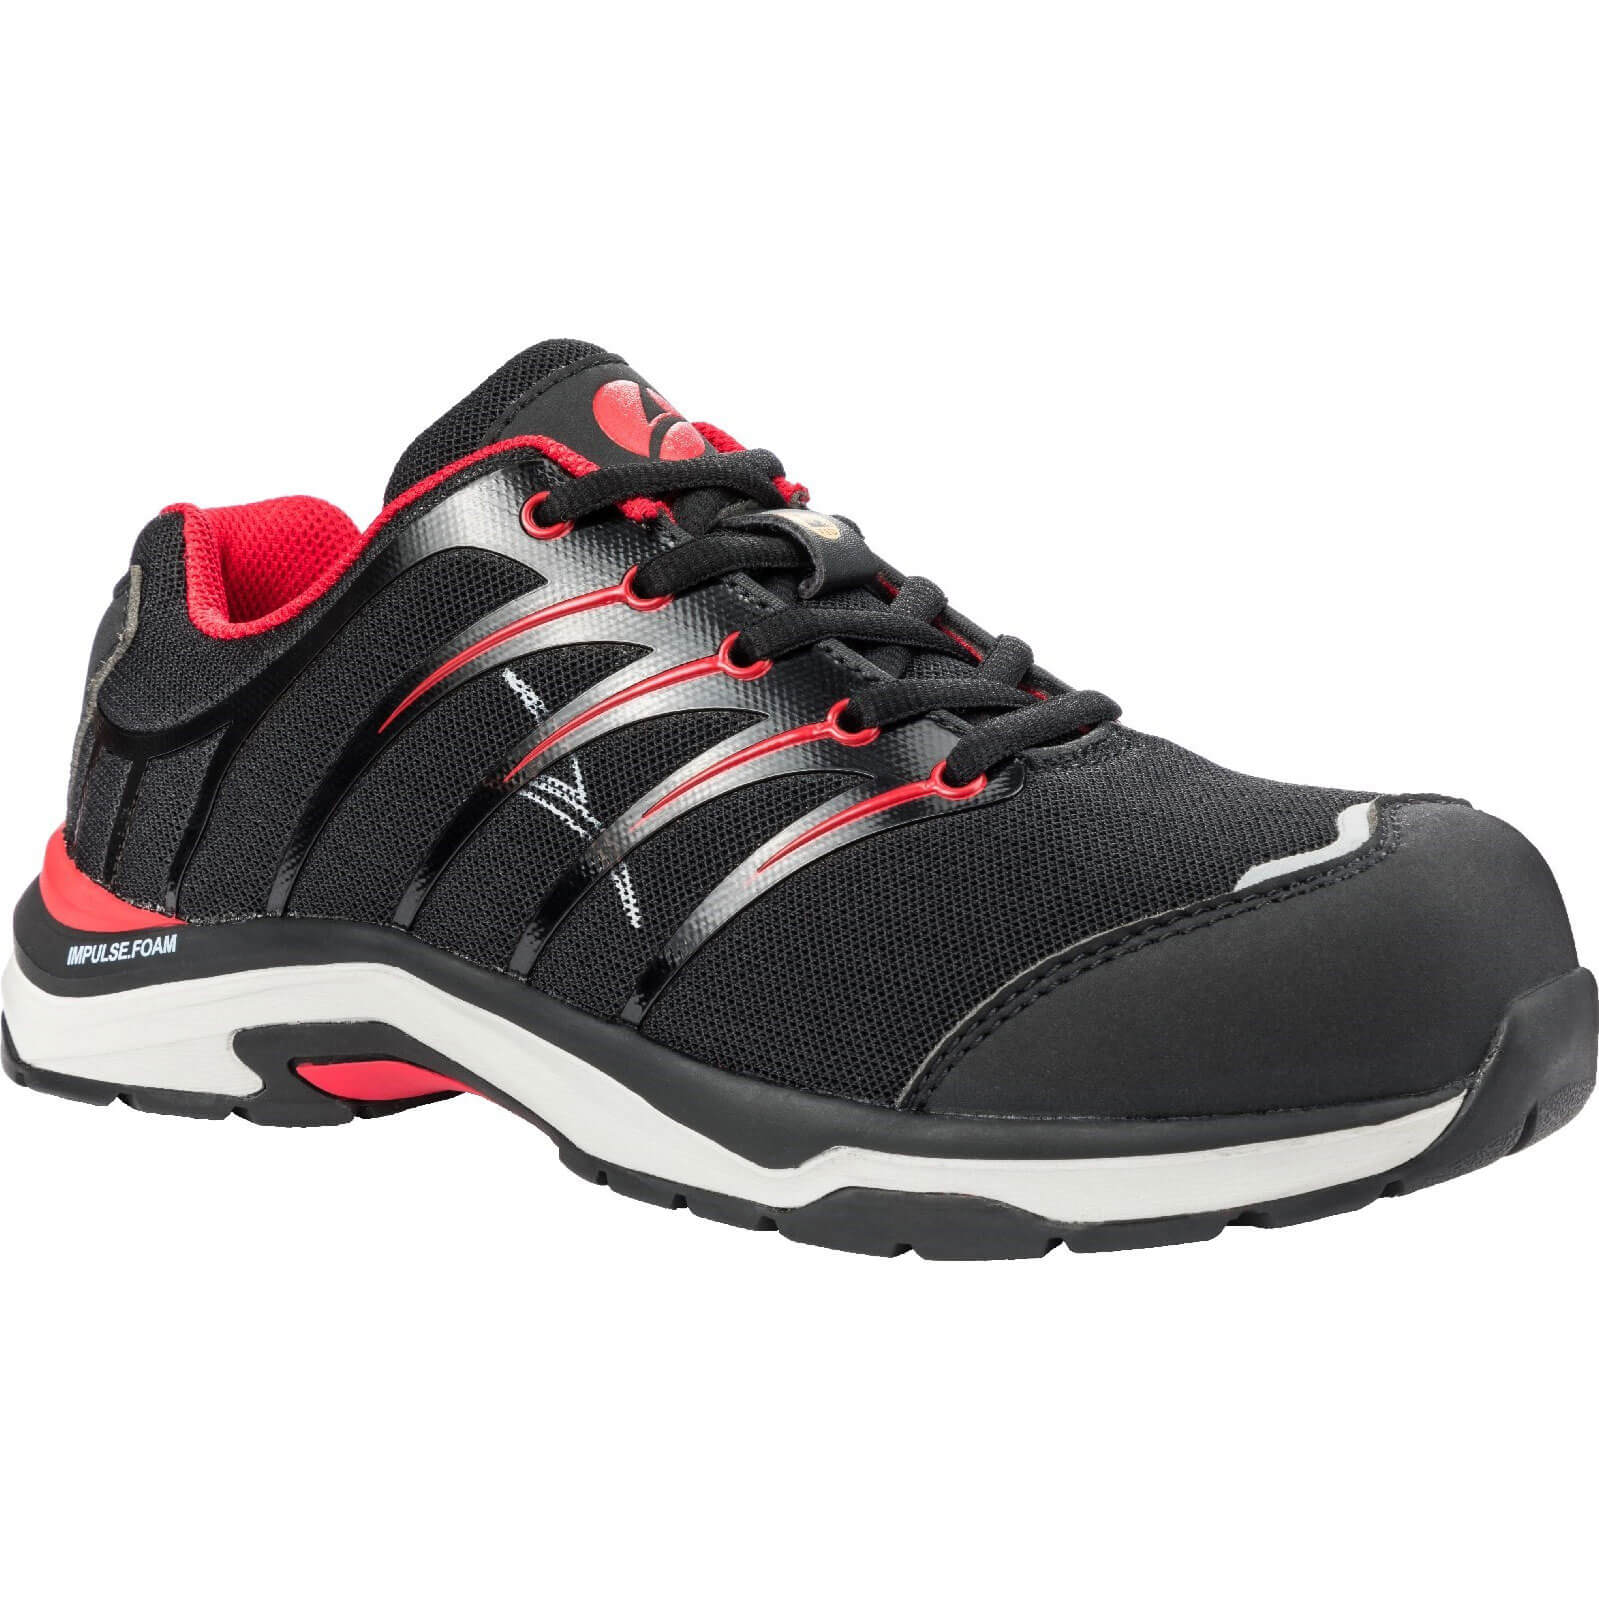 Image of Albatros Twist Low Lace Up Safety Shoe Black / Red Size 8